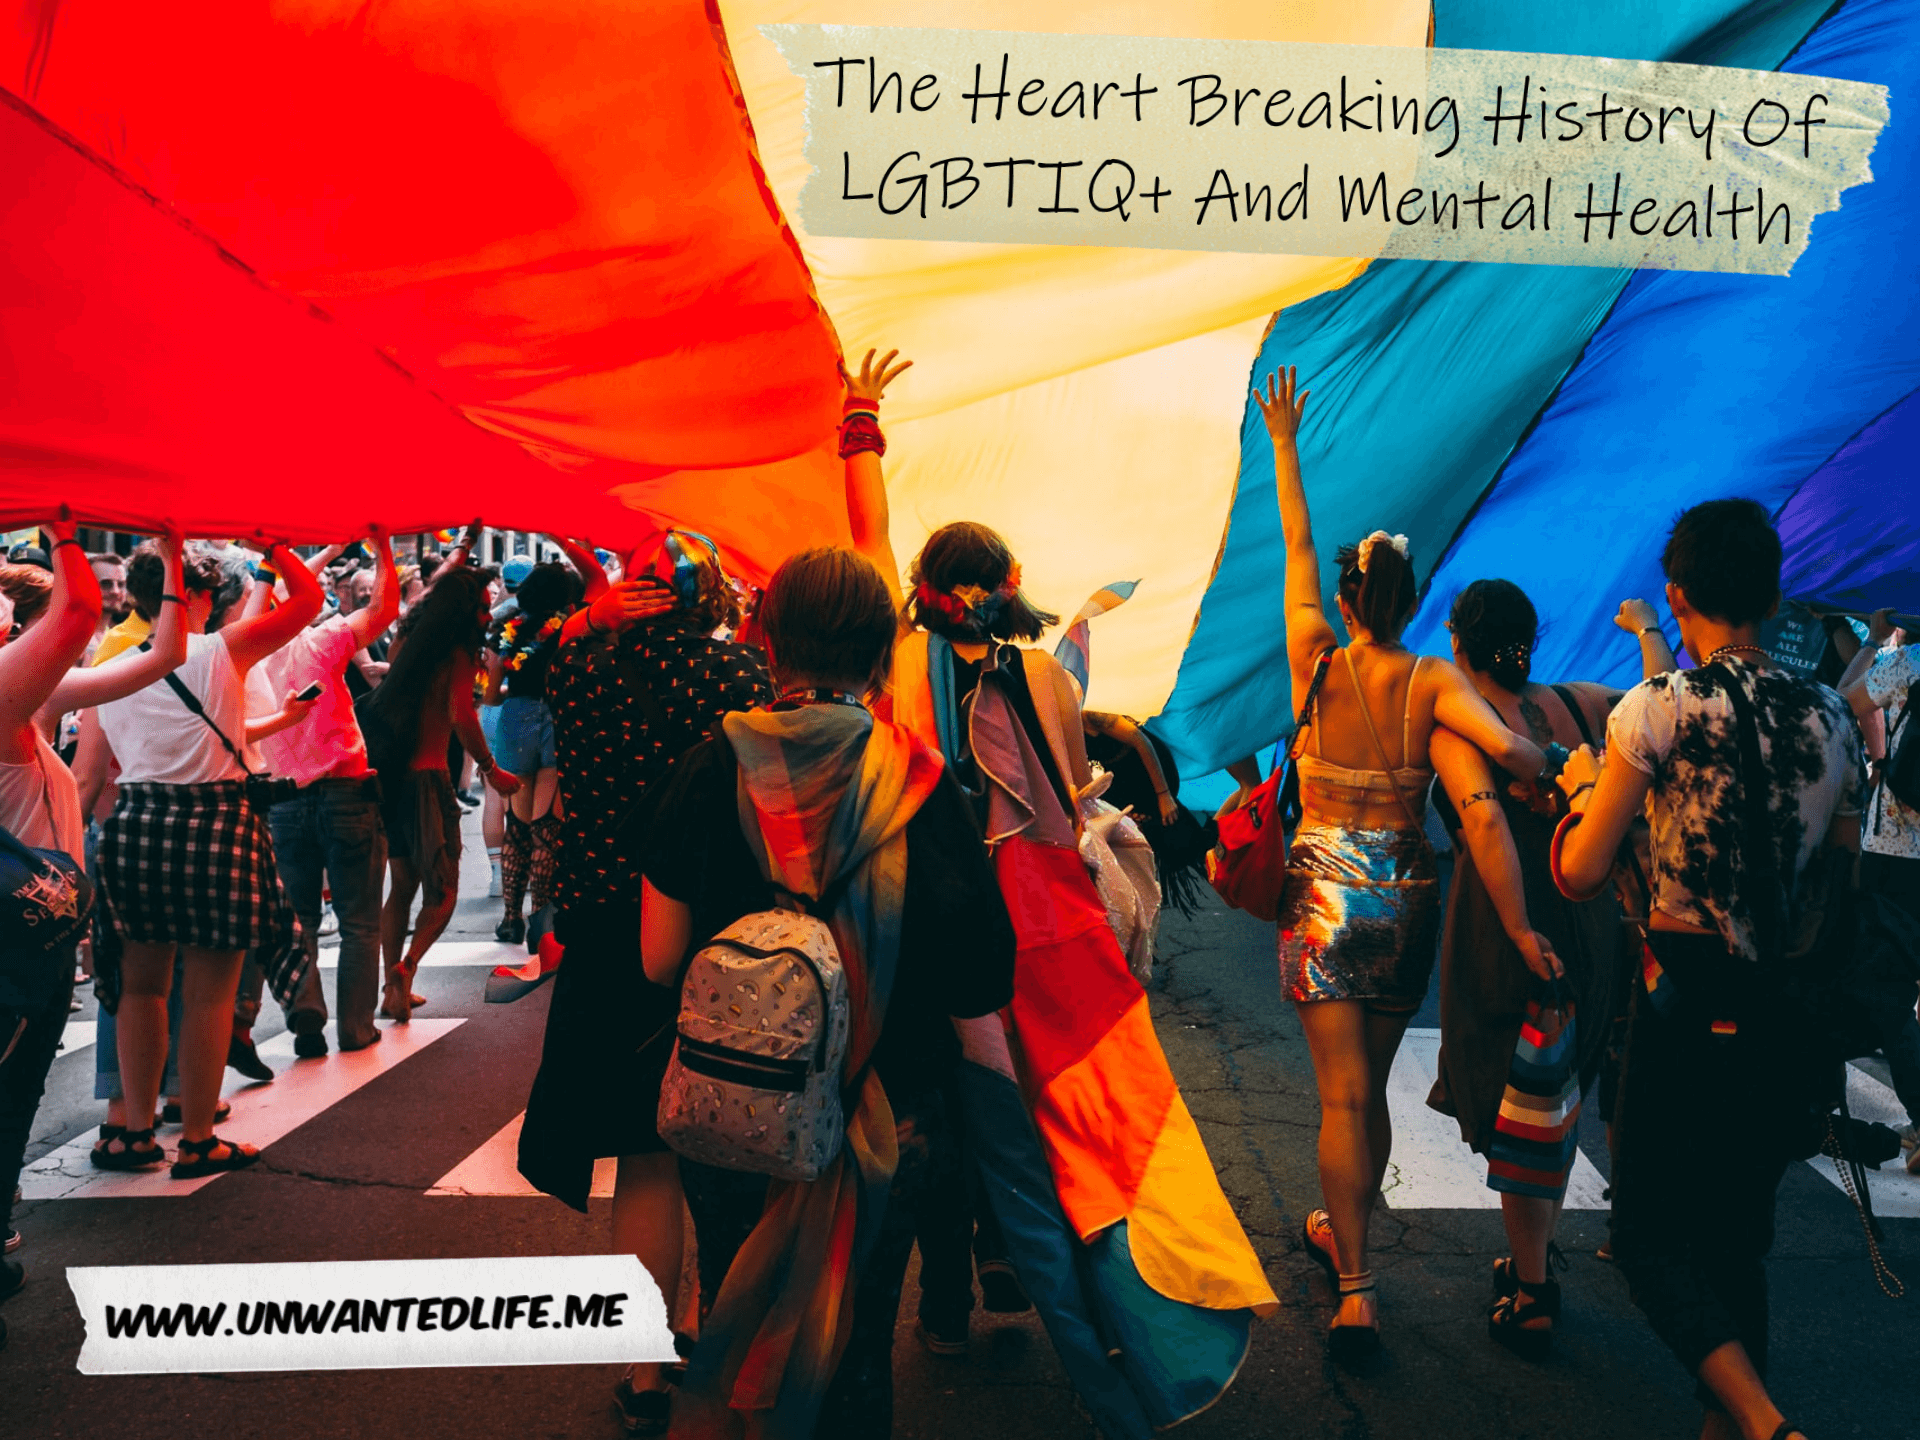 A photo of a pride event with people walking under a giant LGBT+ flag to represent the topic of the article - The Heart Breaking History Of LGBTIQ+ And Mental Health